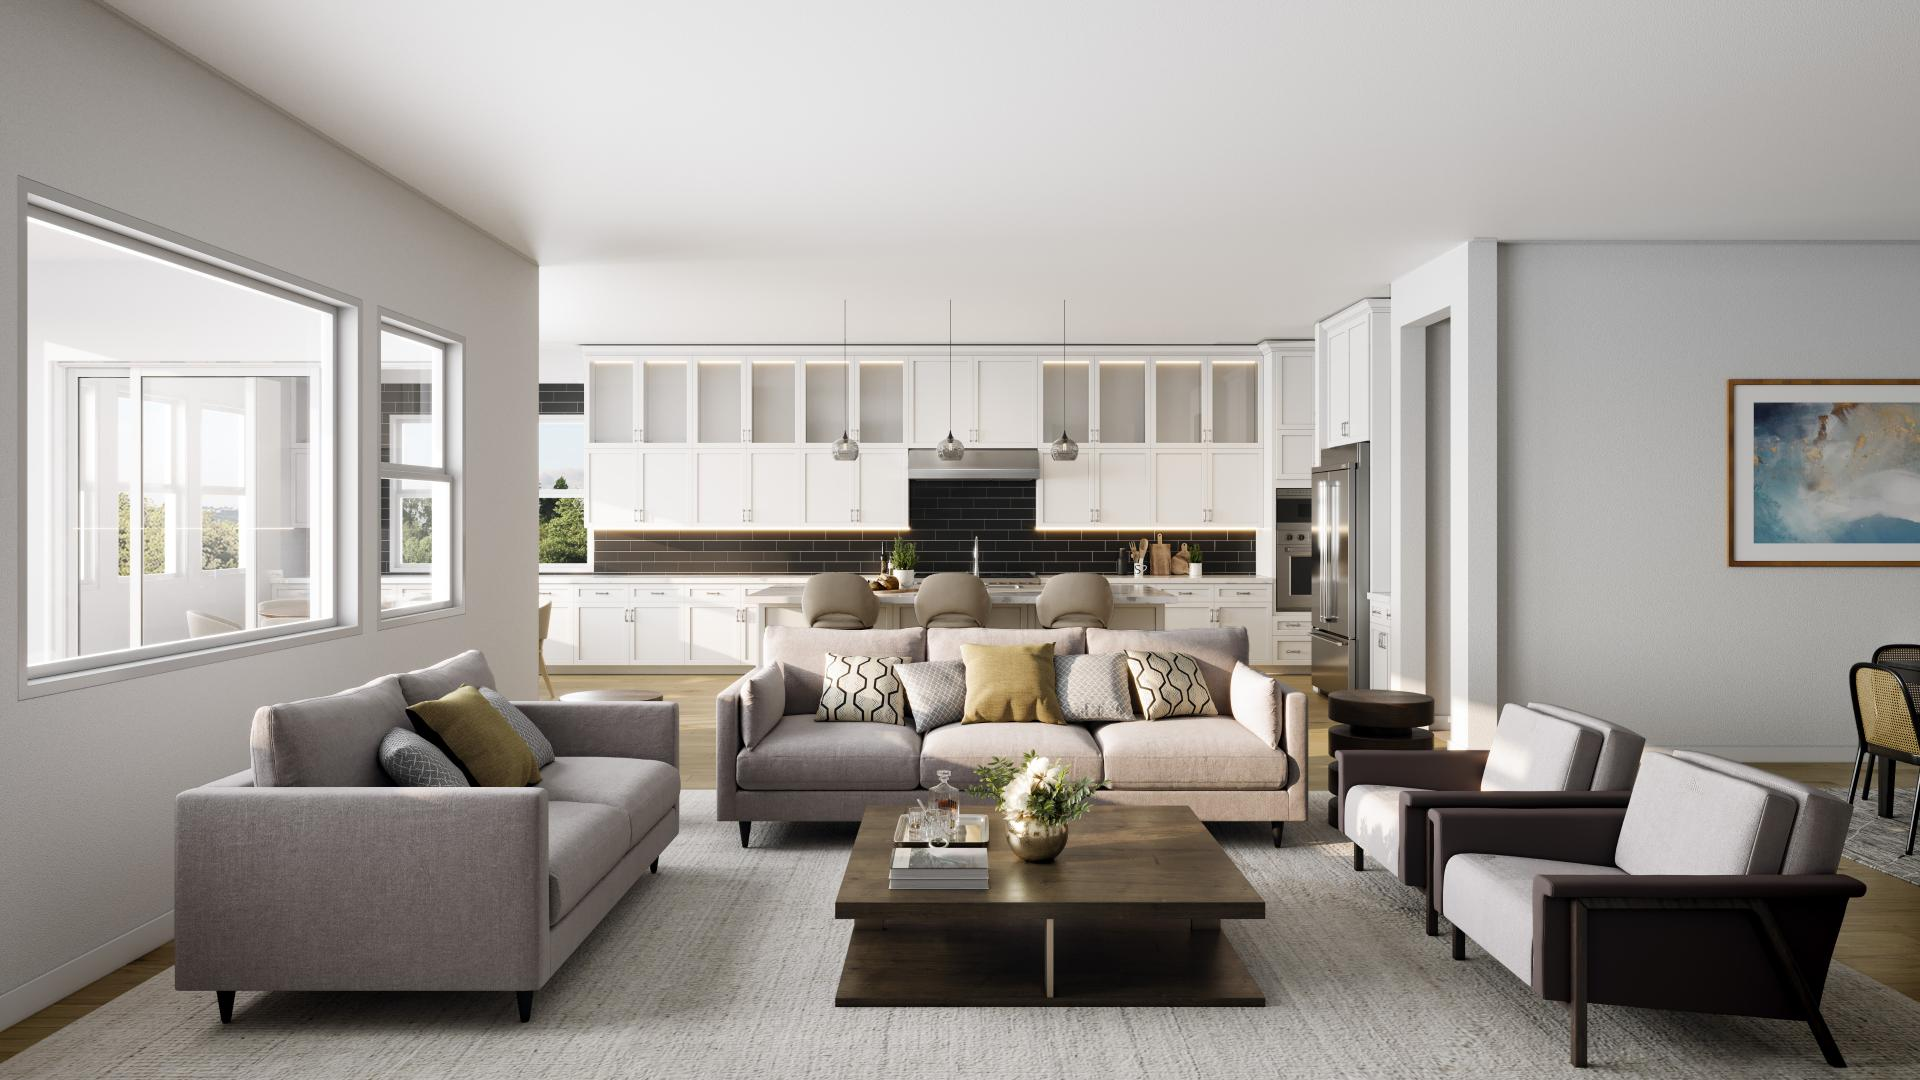 Bright and open floor plans